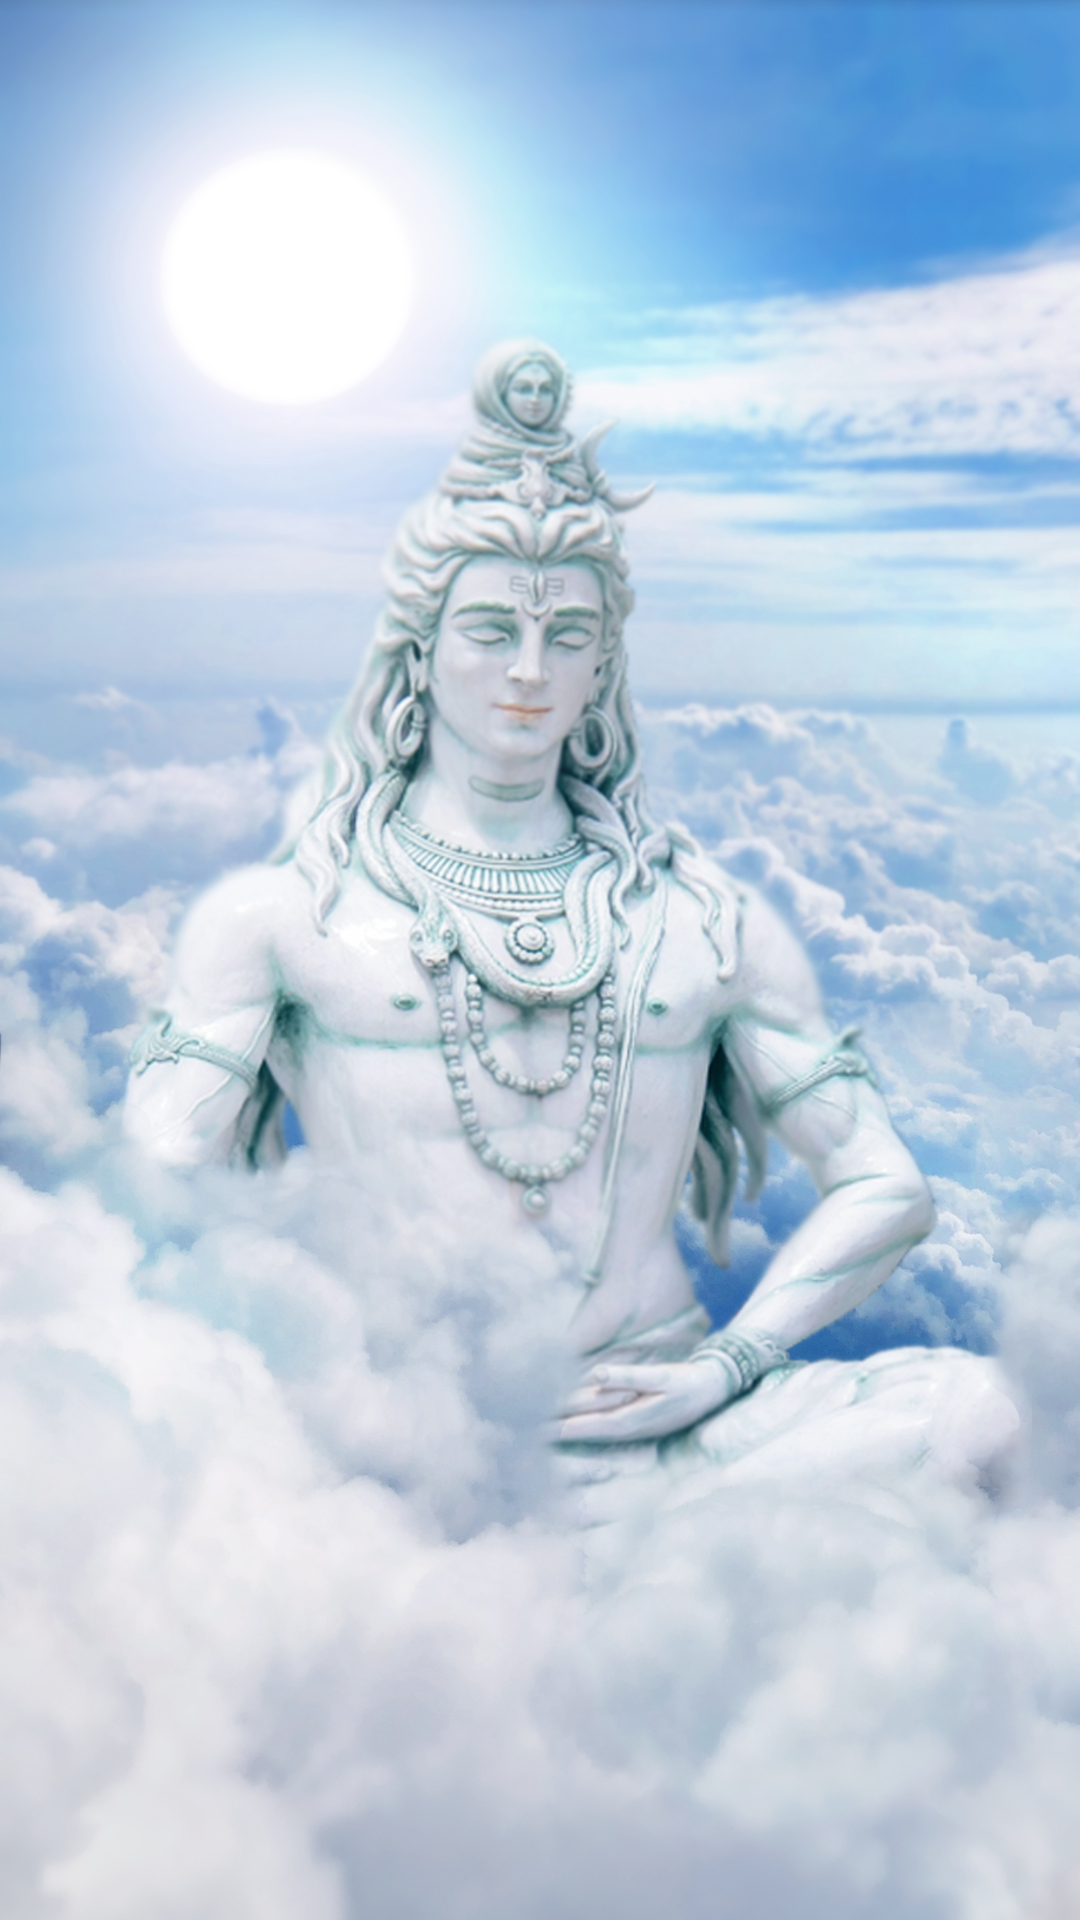 shiva hd wallpaper full hd 1920 x 1080